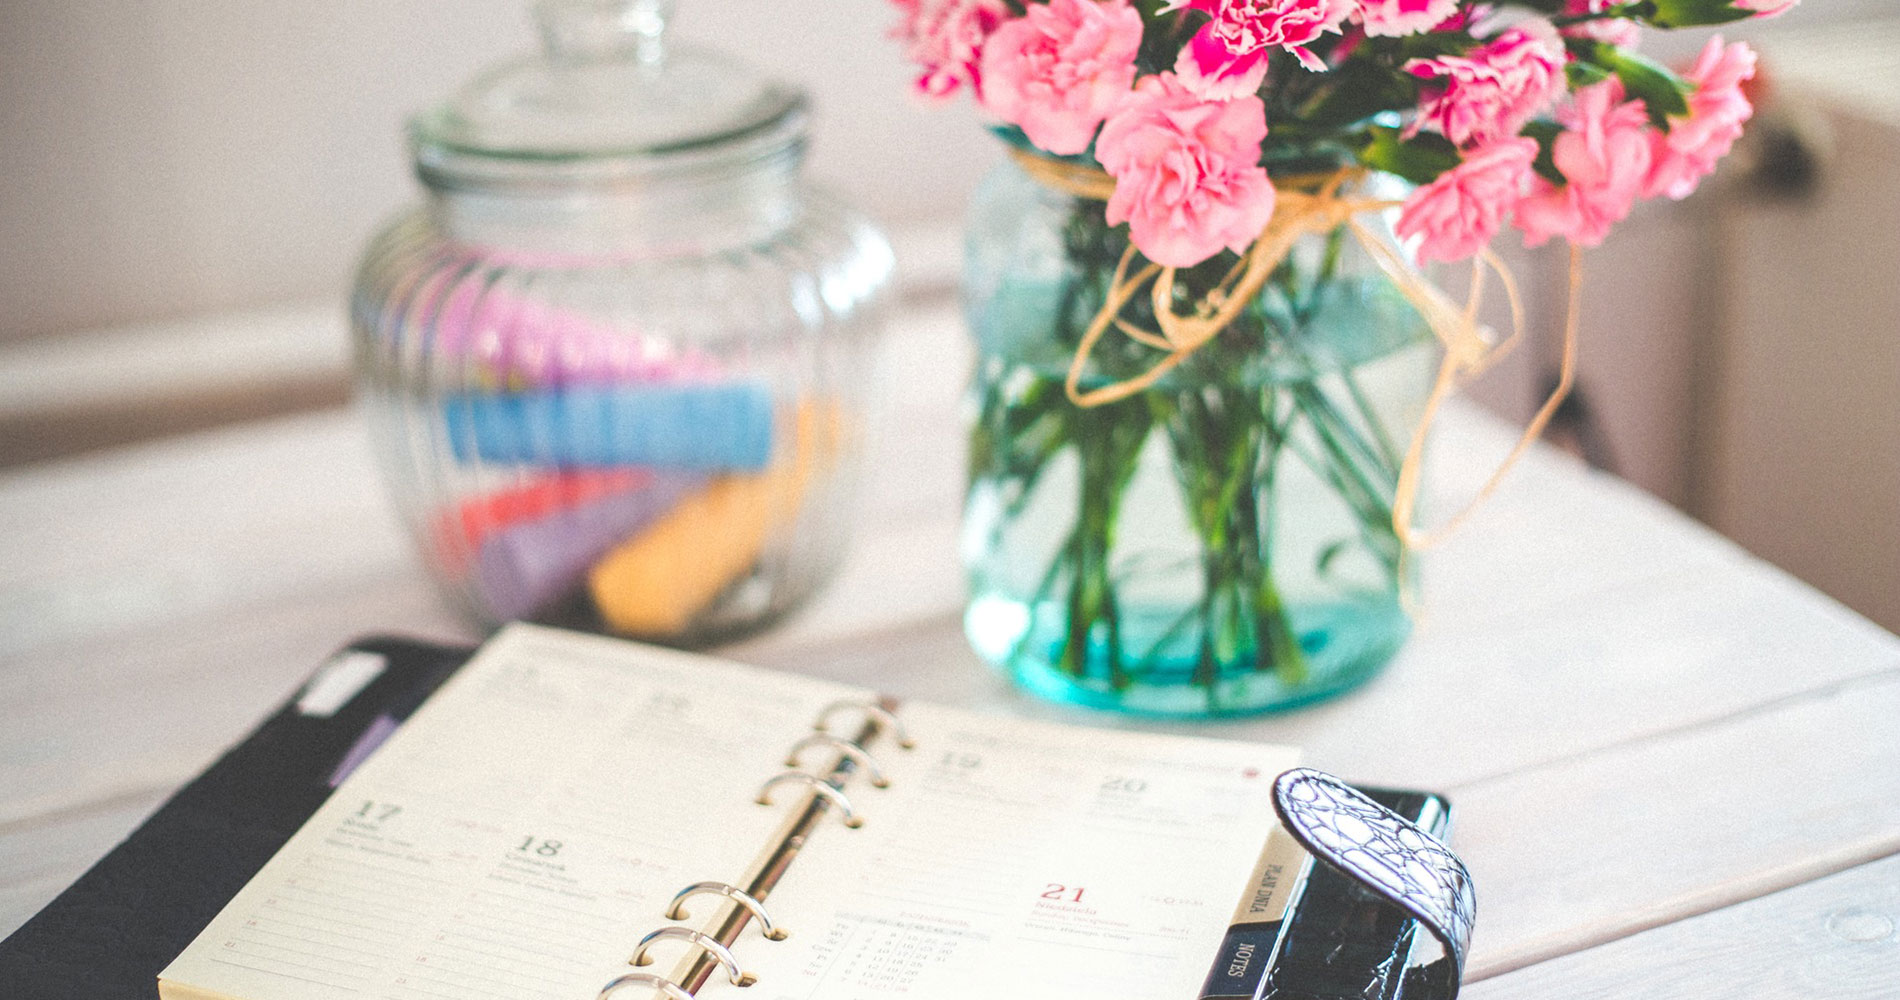 Planner and flowers on vintage desk